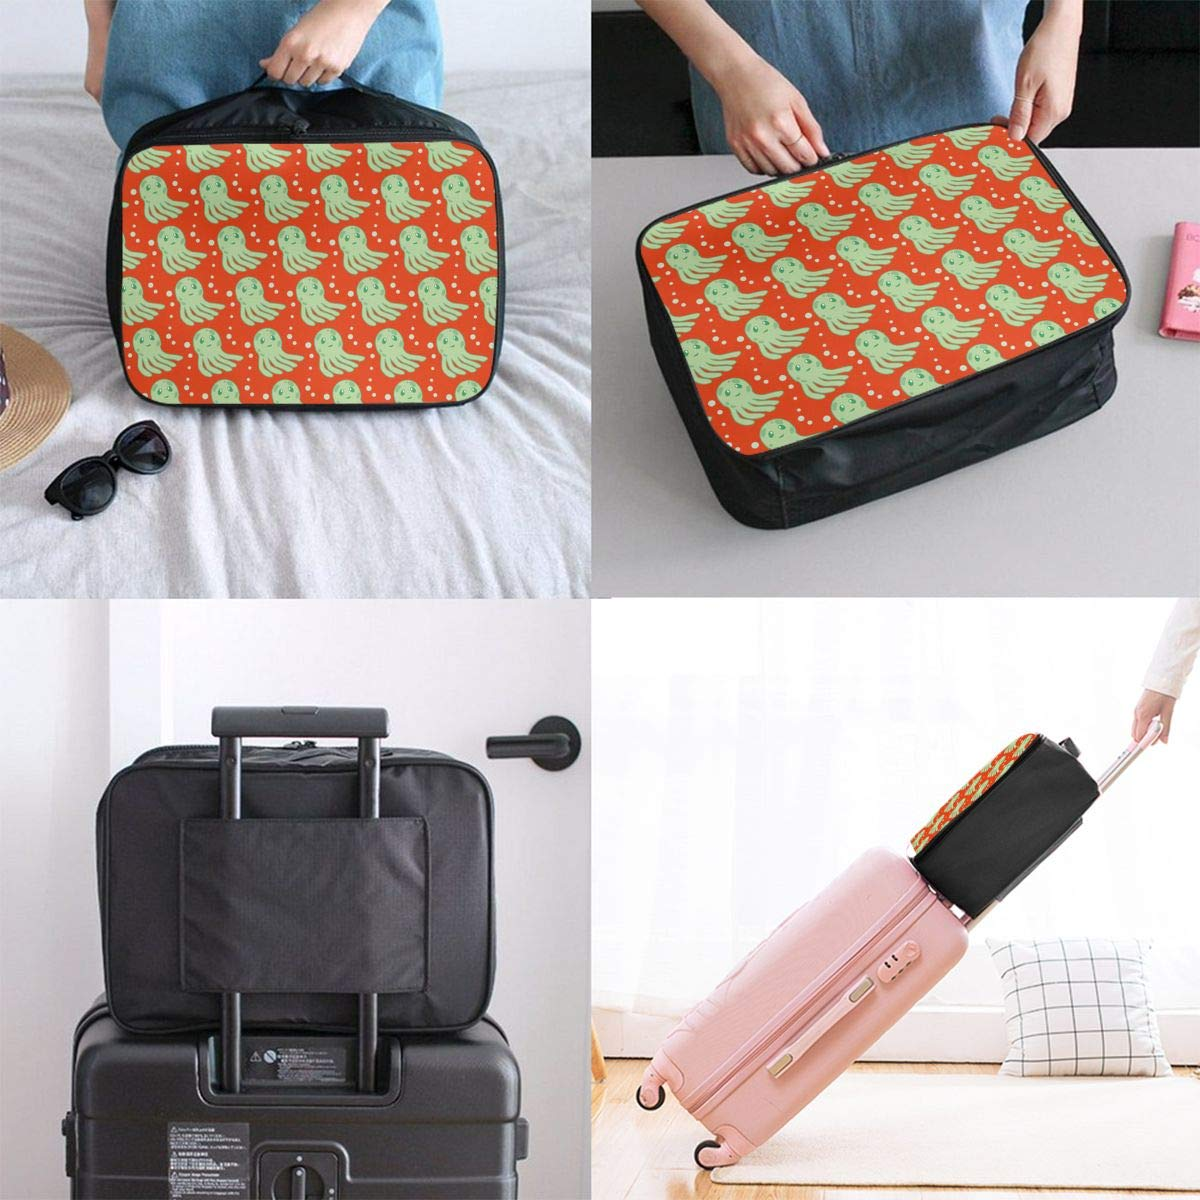 YueLJB Jellyfish Bubbles Lightweight Large Capacity Portable Luggage Bag Travel Duffel Bag Storage Carry Luggage Duffle Tote Bag